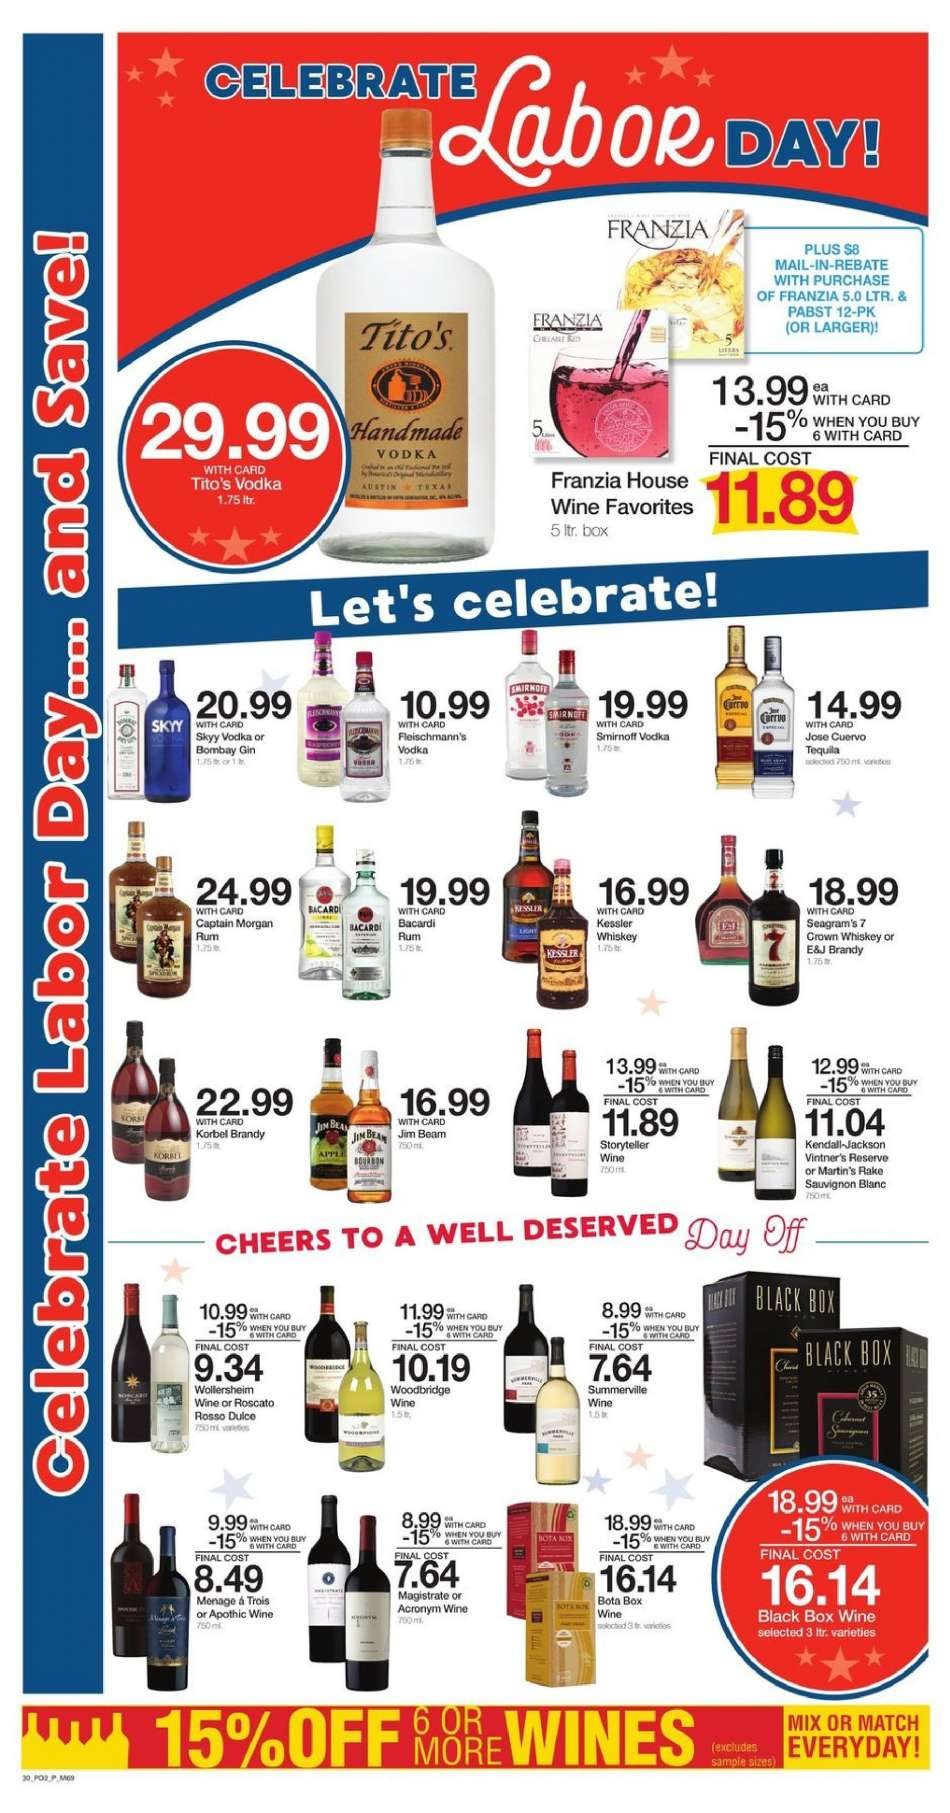 Pick 'n Save flyer 08 29 2018 - 09 04 2018 | Weekly-ads us